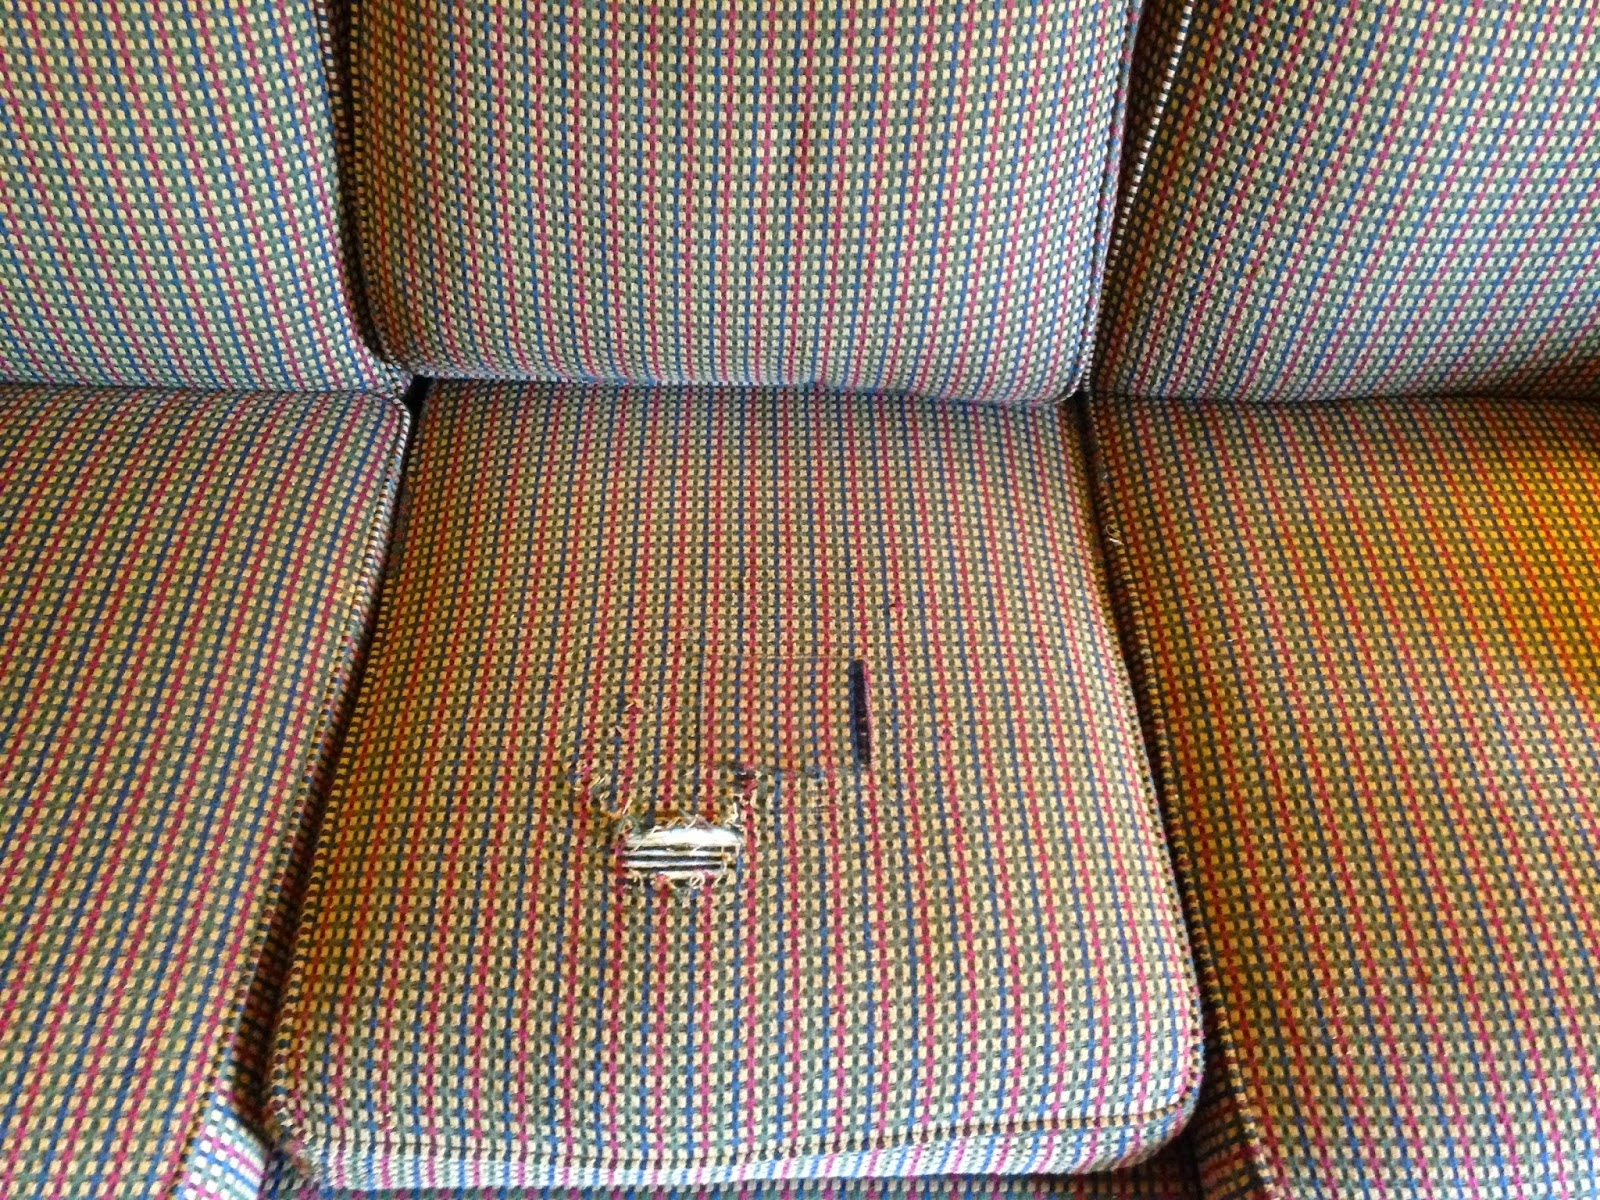 How To Fix Sofa Back Cushions Simmons Leather Big Lots Babyfingers Quick And Easy 15 Minute For Damaged